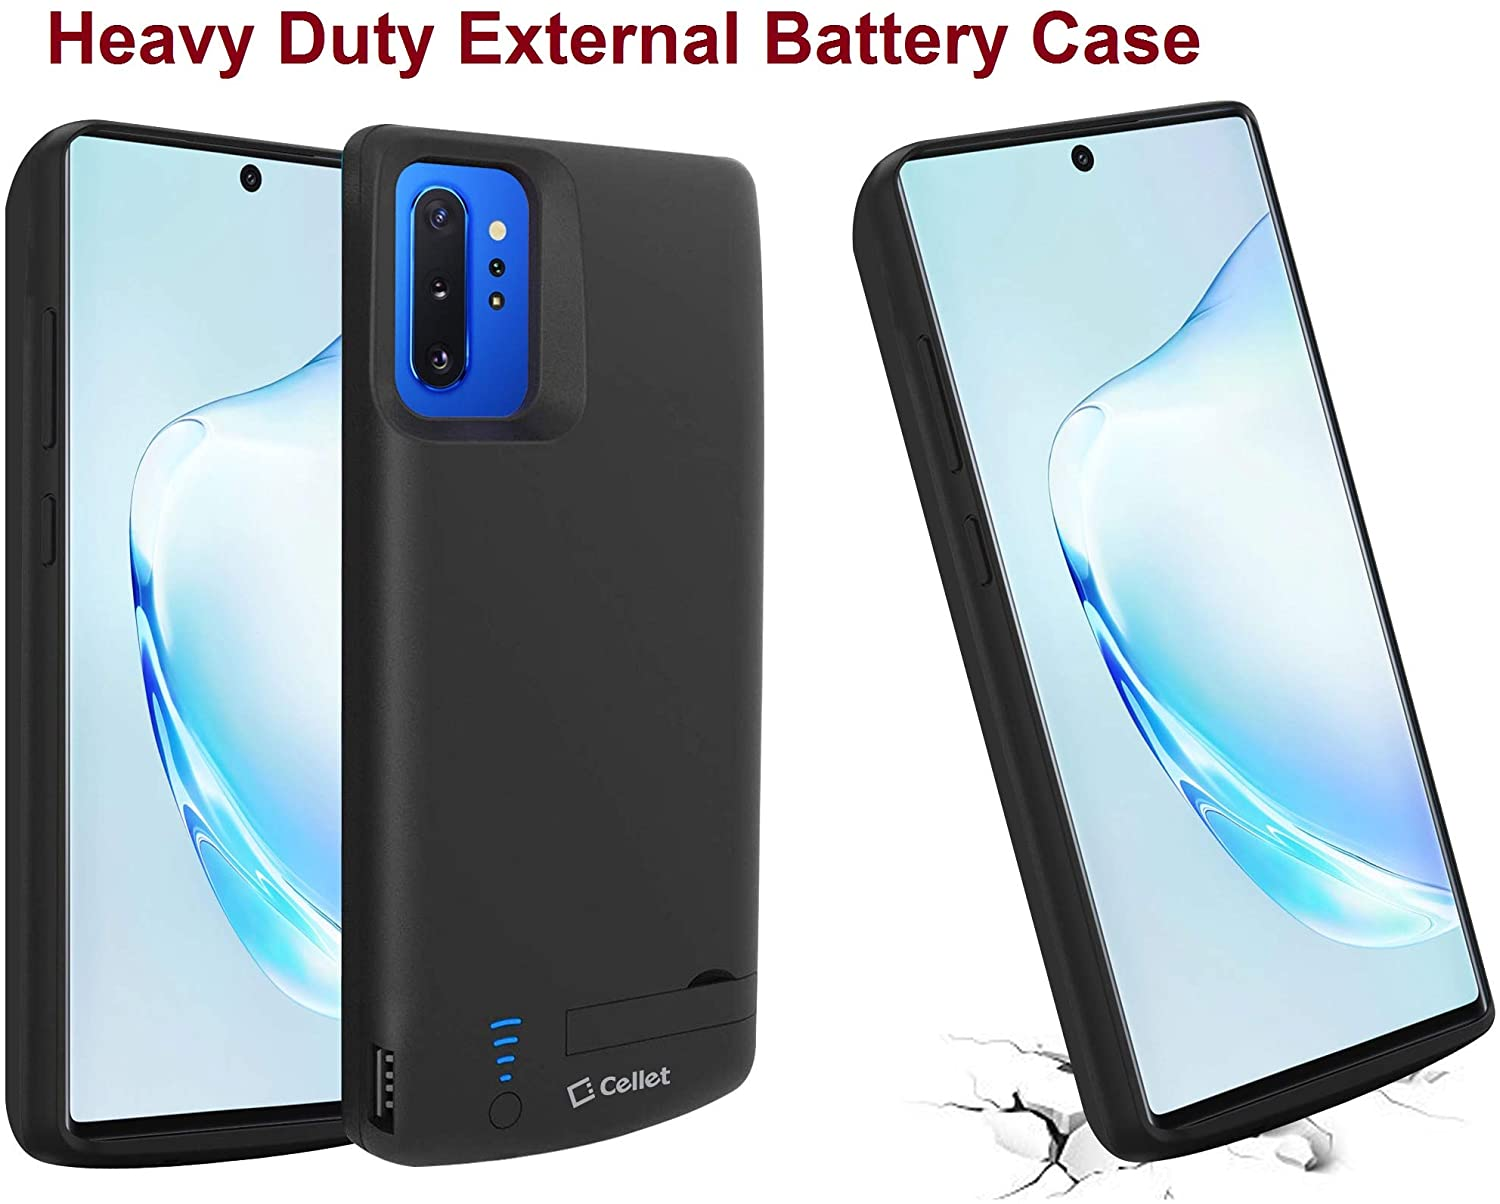 Galaxy Note 10+ Plus (2019) Compatible with External Battery Case, High Power, Heavy Duty Bank (6000mAh) Rechargeable Charging Case